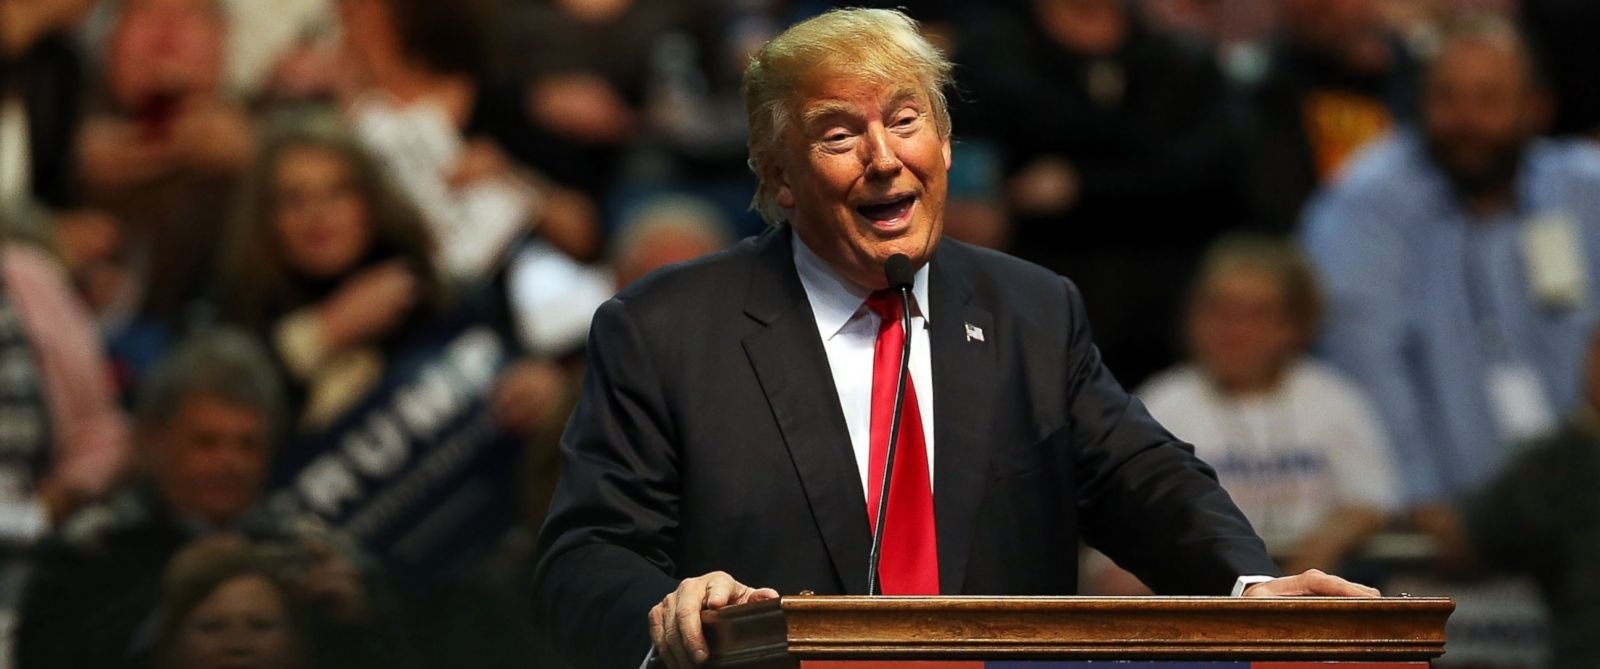 PHOTO: Republican presidential frontrunner Donald Trump speaks at the Mississippi Coast Coliseum on Jan. 2, 2016 in Biloxi, Miss.